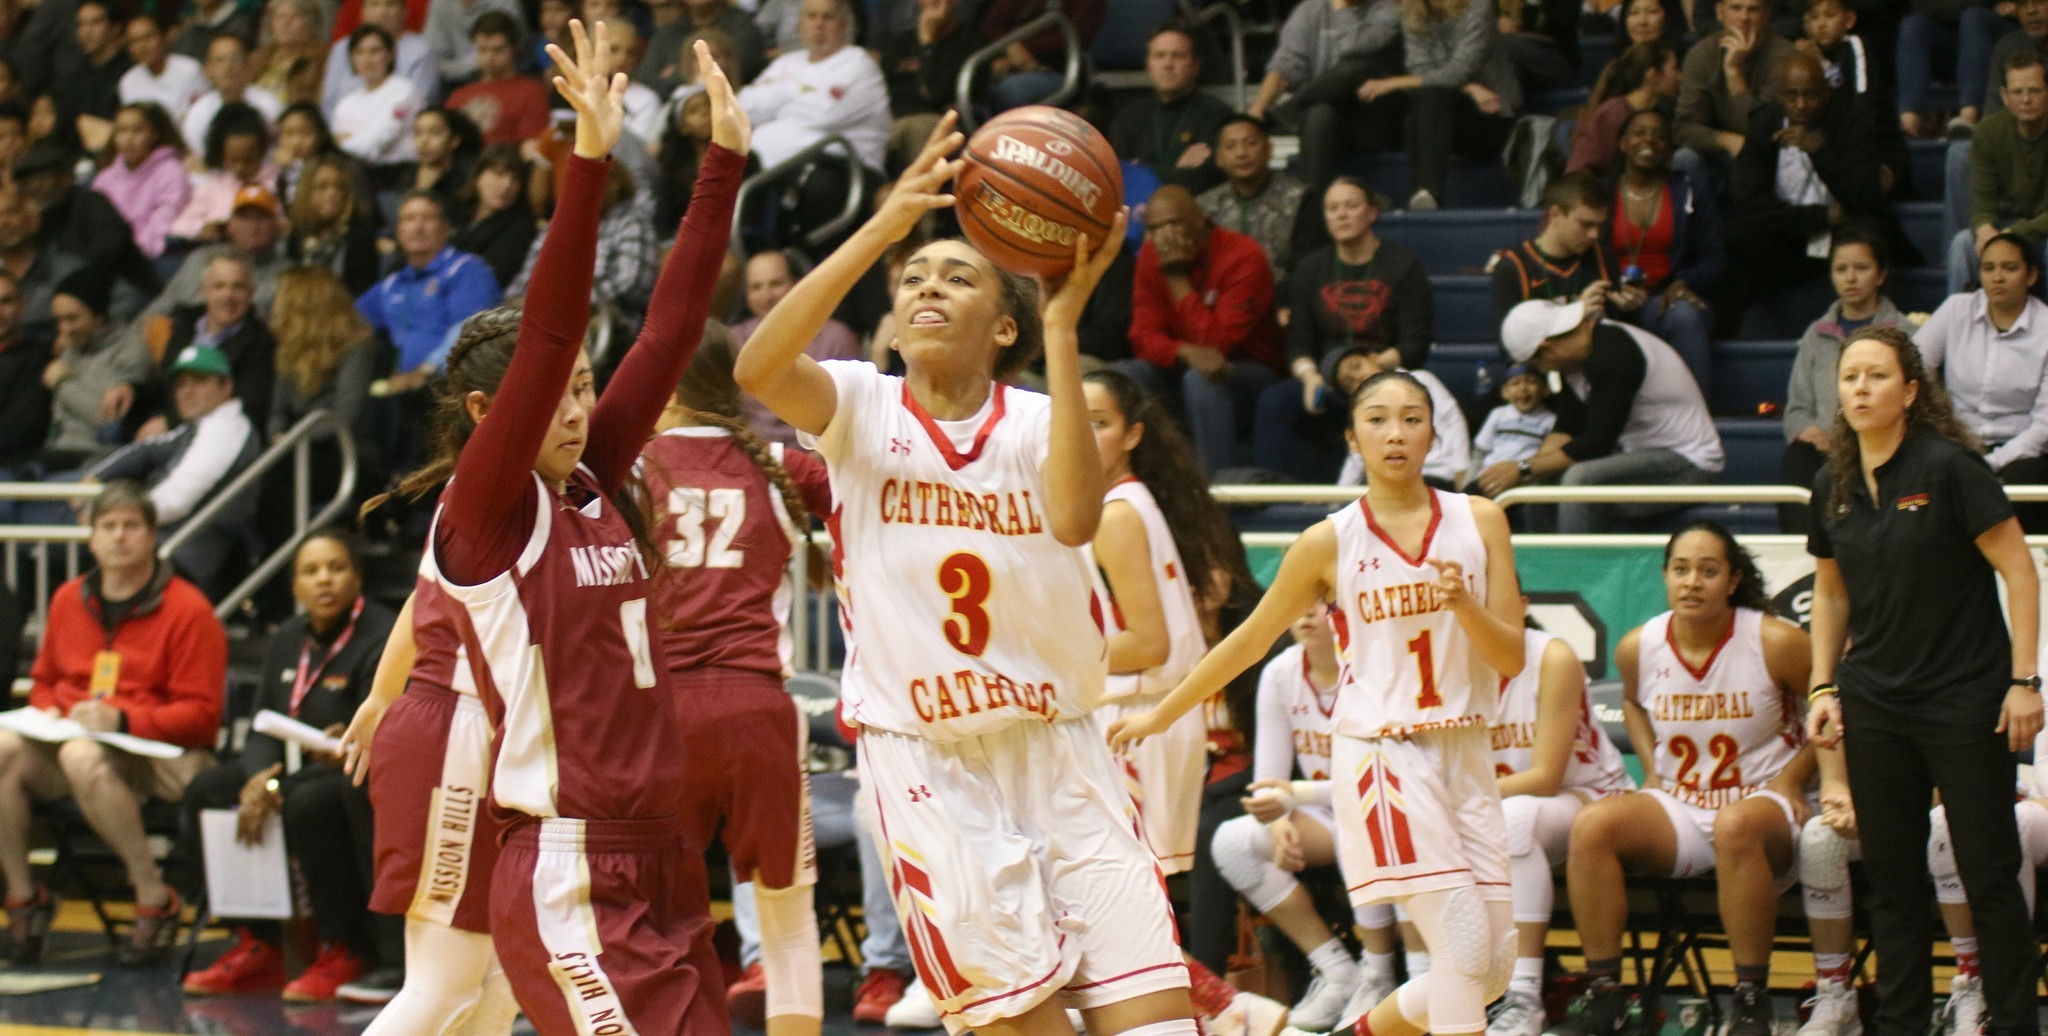 Junior Mazatlan Harris starred on both ends of the court for Cathedral Catholic.